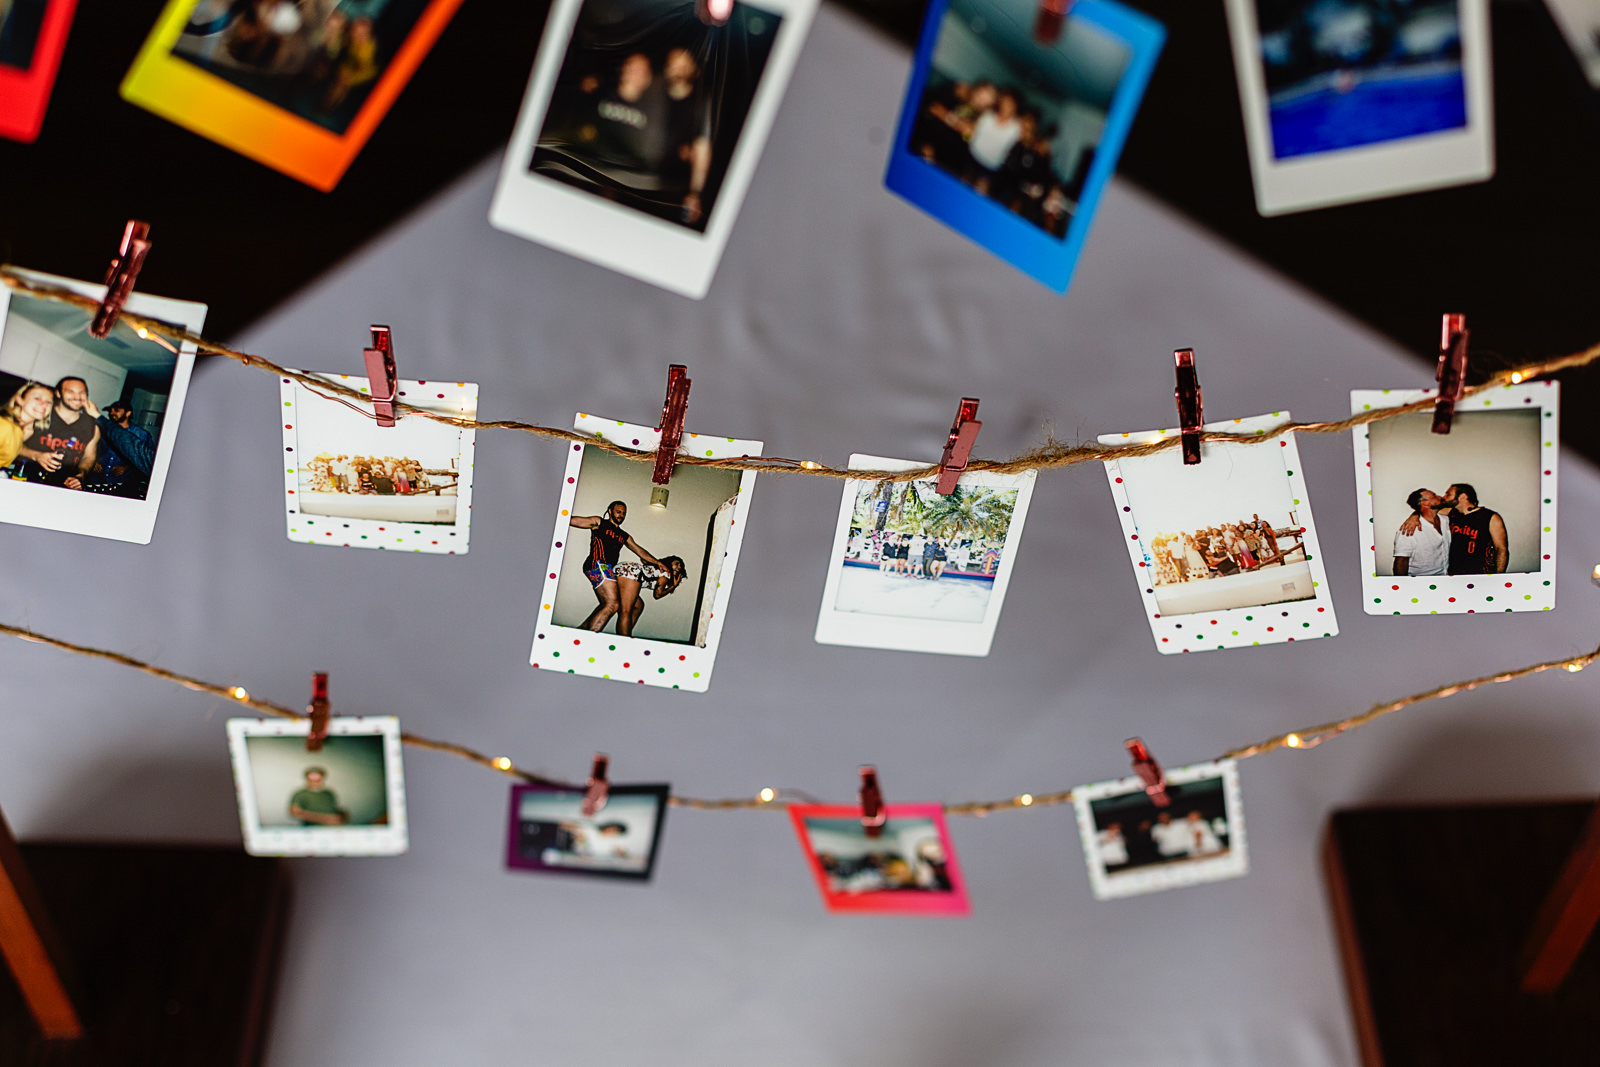 wedding-decorations-polaroid-instax-mini-hanging.jpg